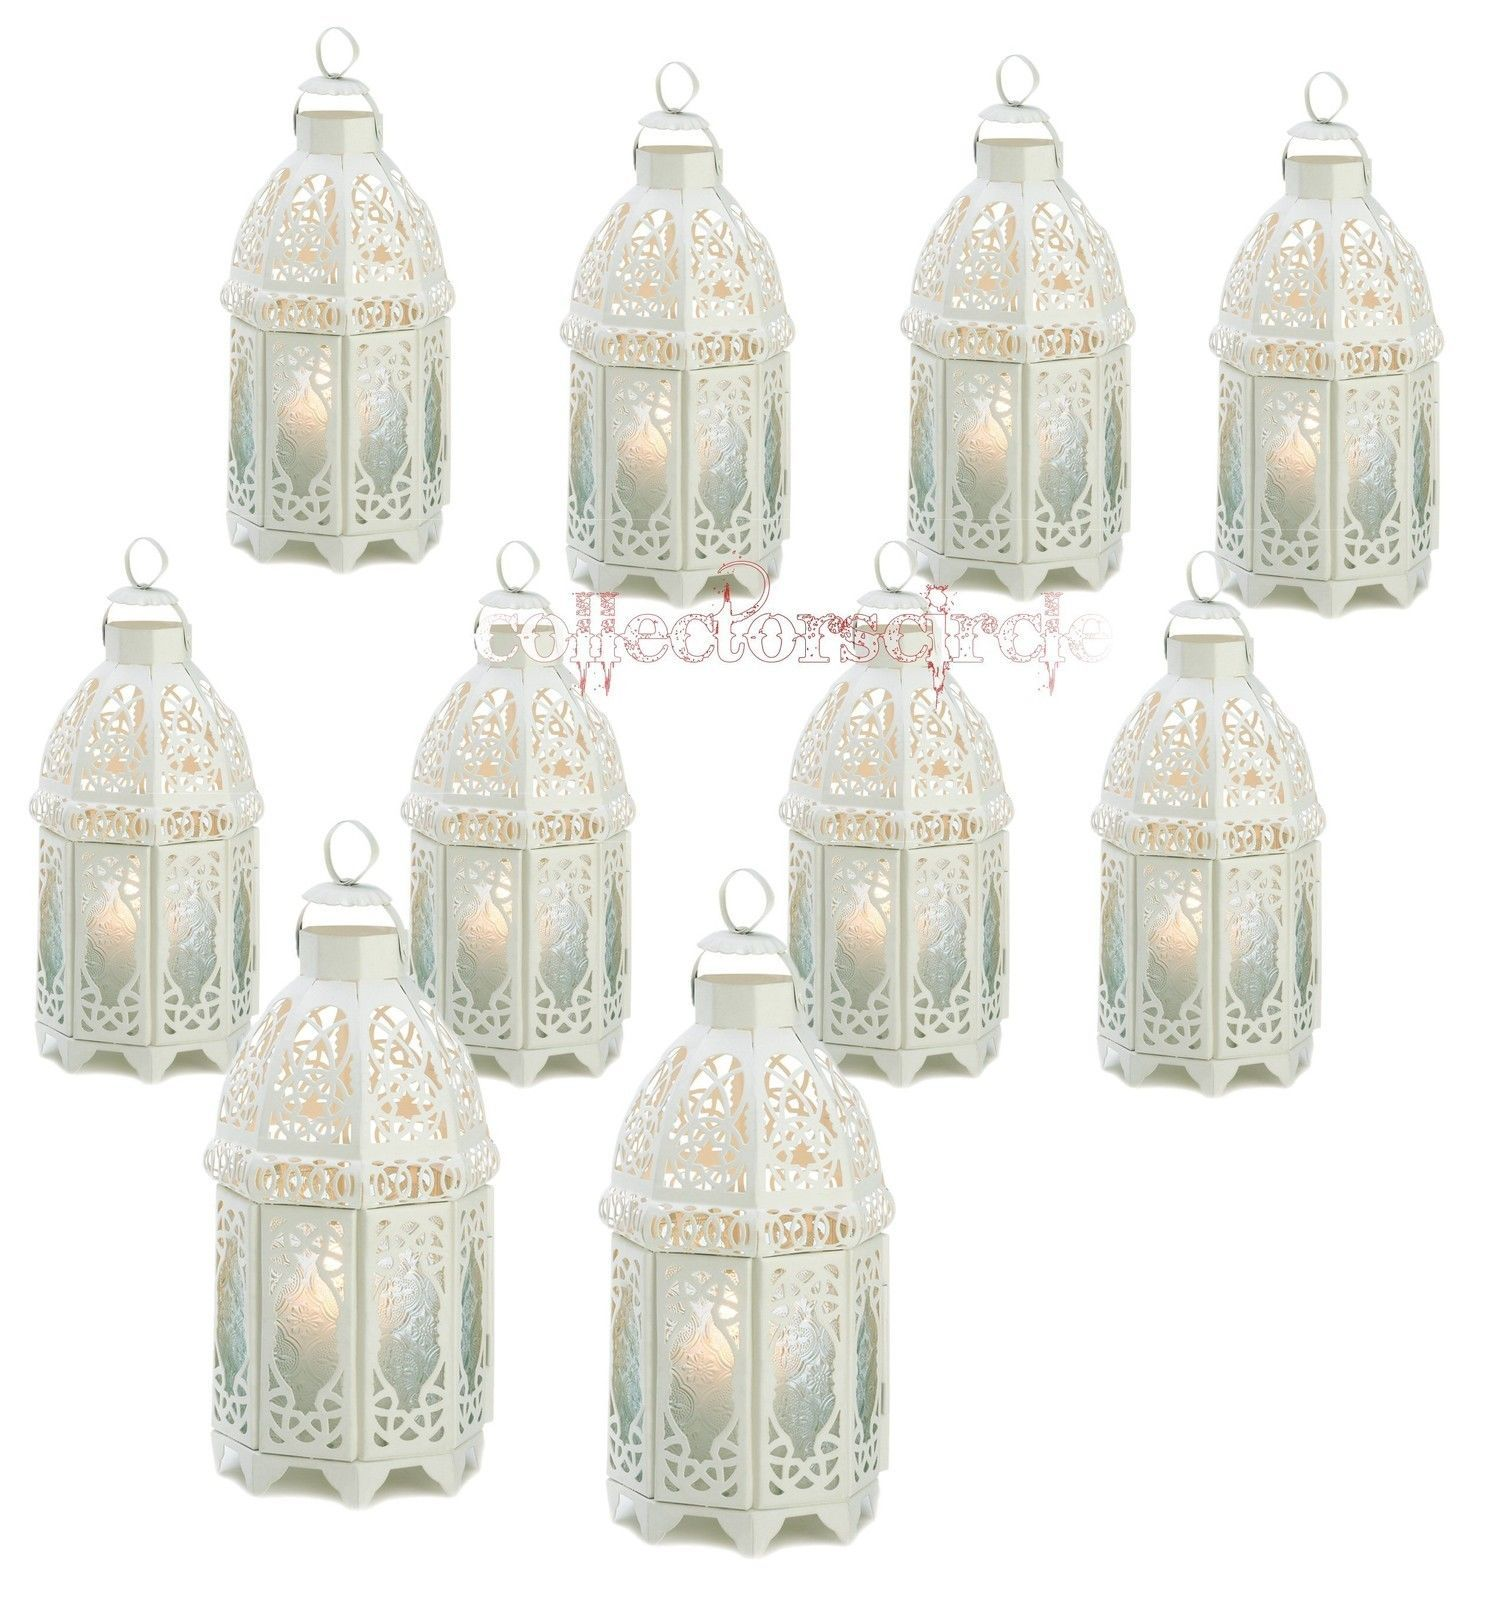 LOT 10 Creamy White Lattice Enchanting Candle Lanterns Wedding Centerpieces